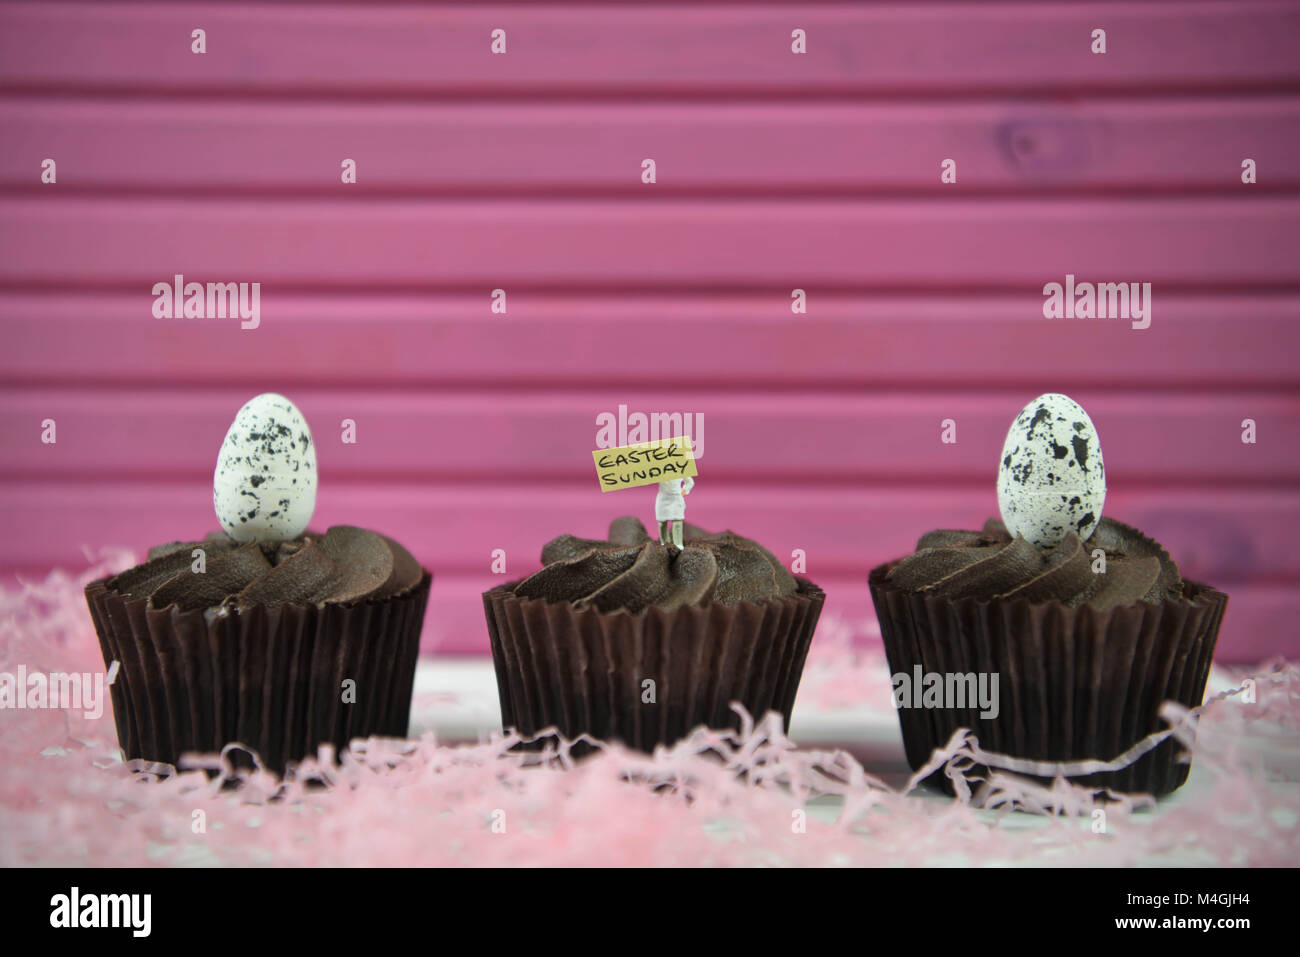 Easter time chocolate cupcakes with egg decorations on top and Easter text or words Stock Photo